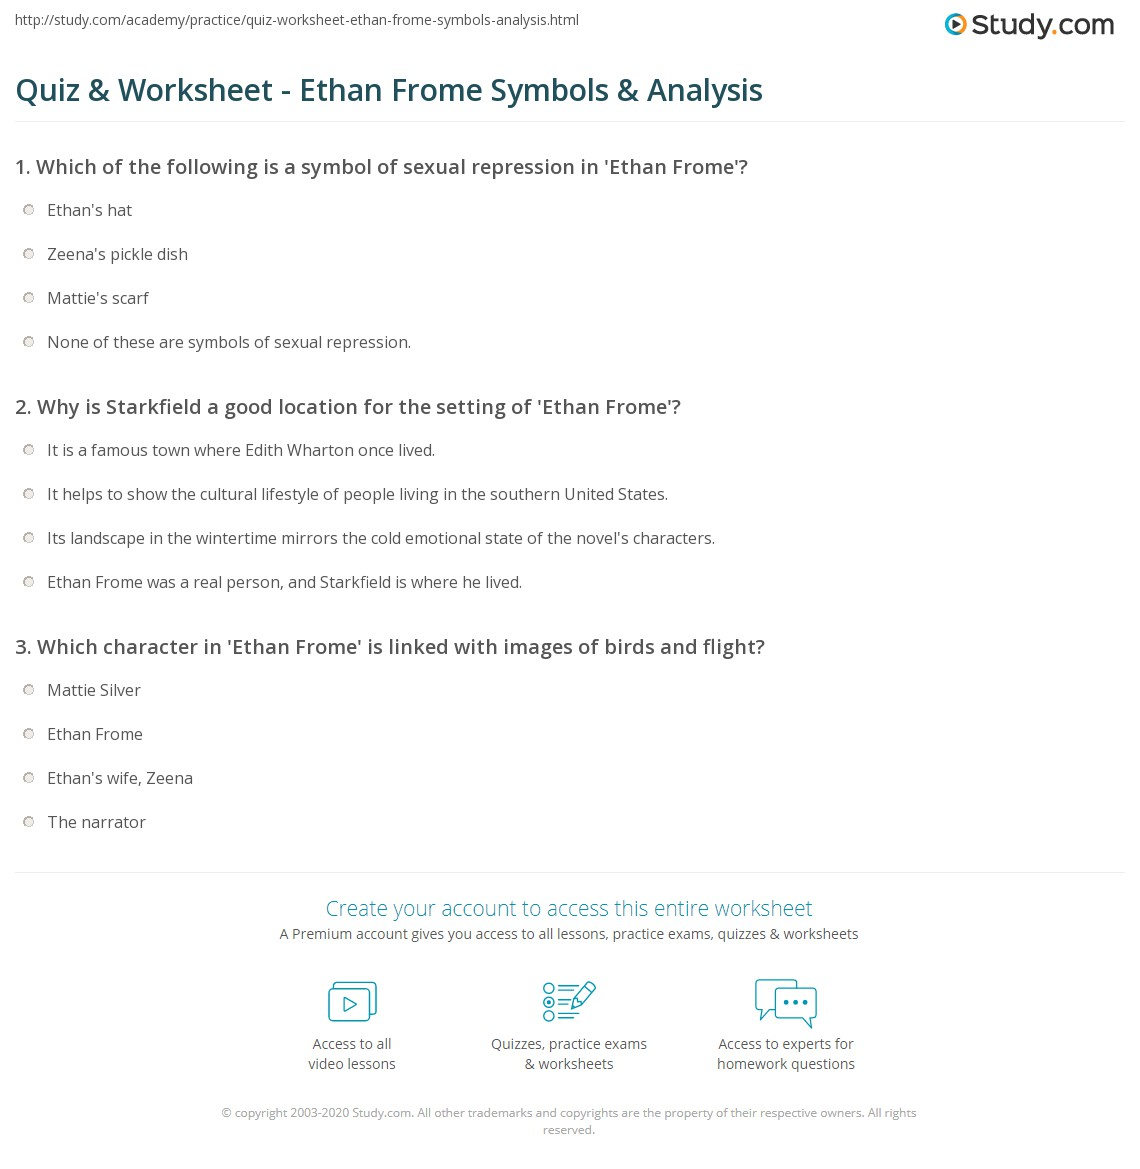 quiz worksheet ethan frome symbols analysis com print ethan frome symbols analysis worksheet